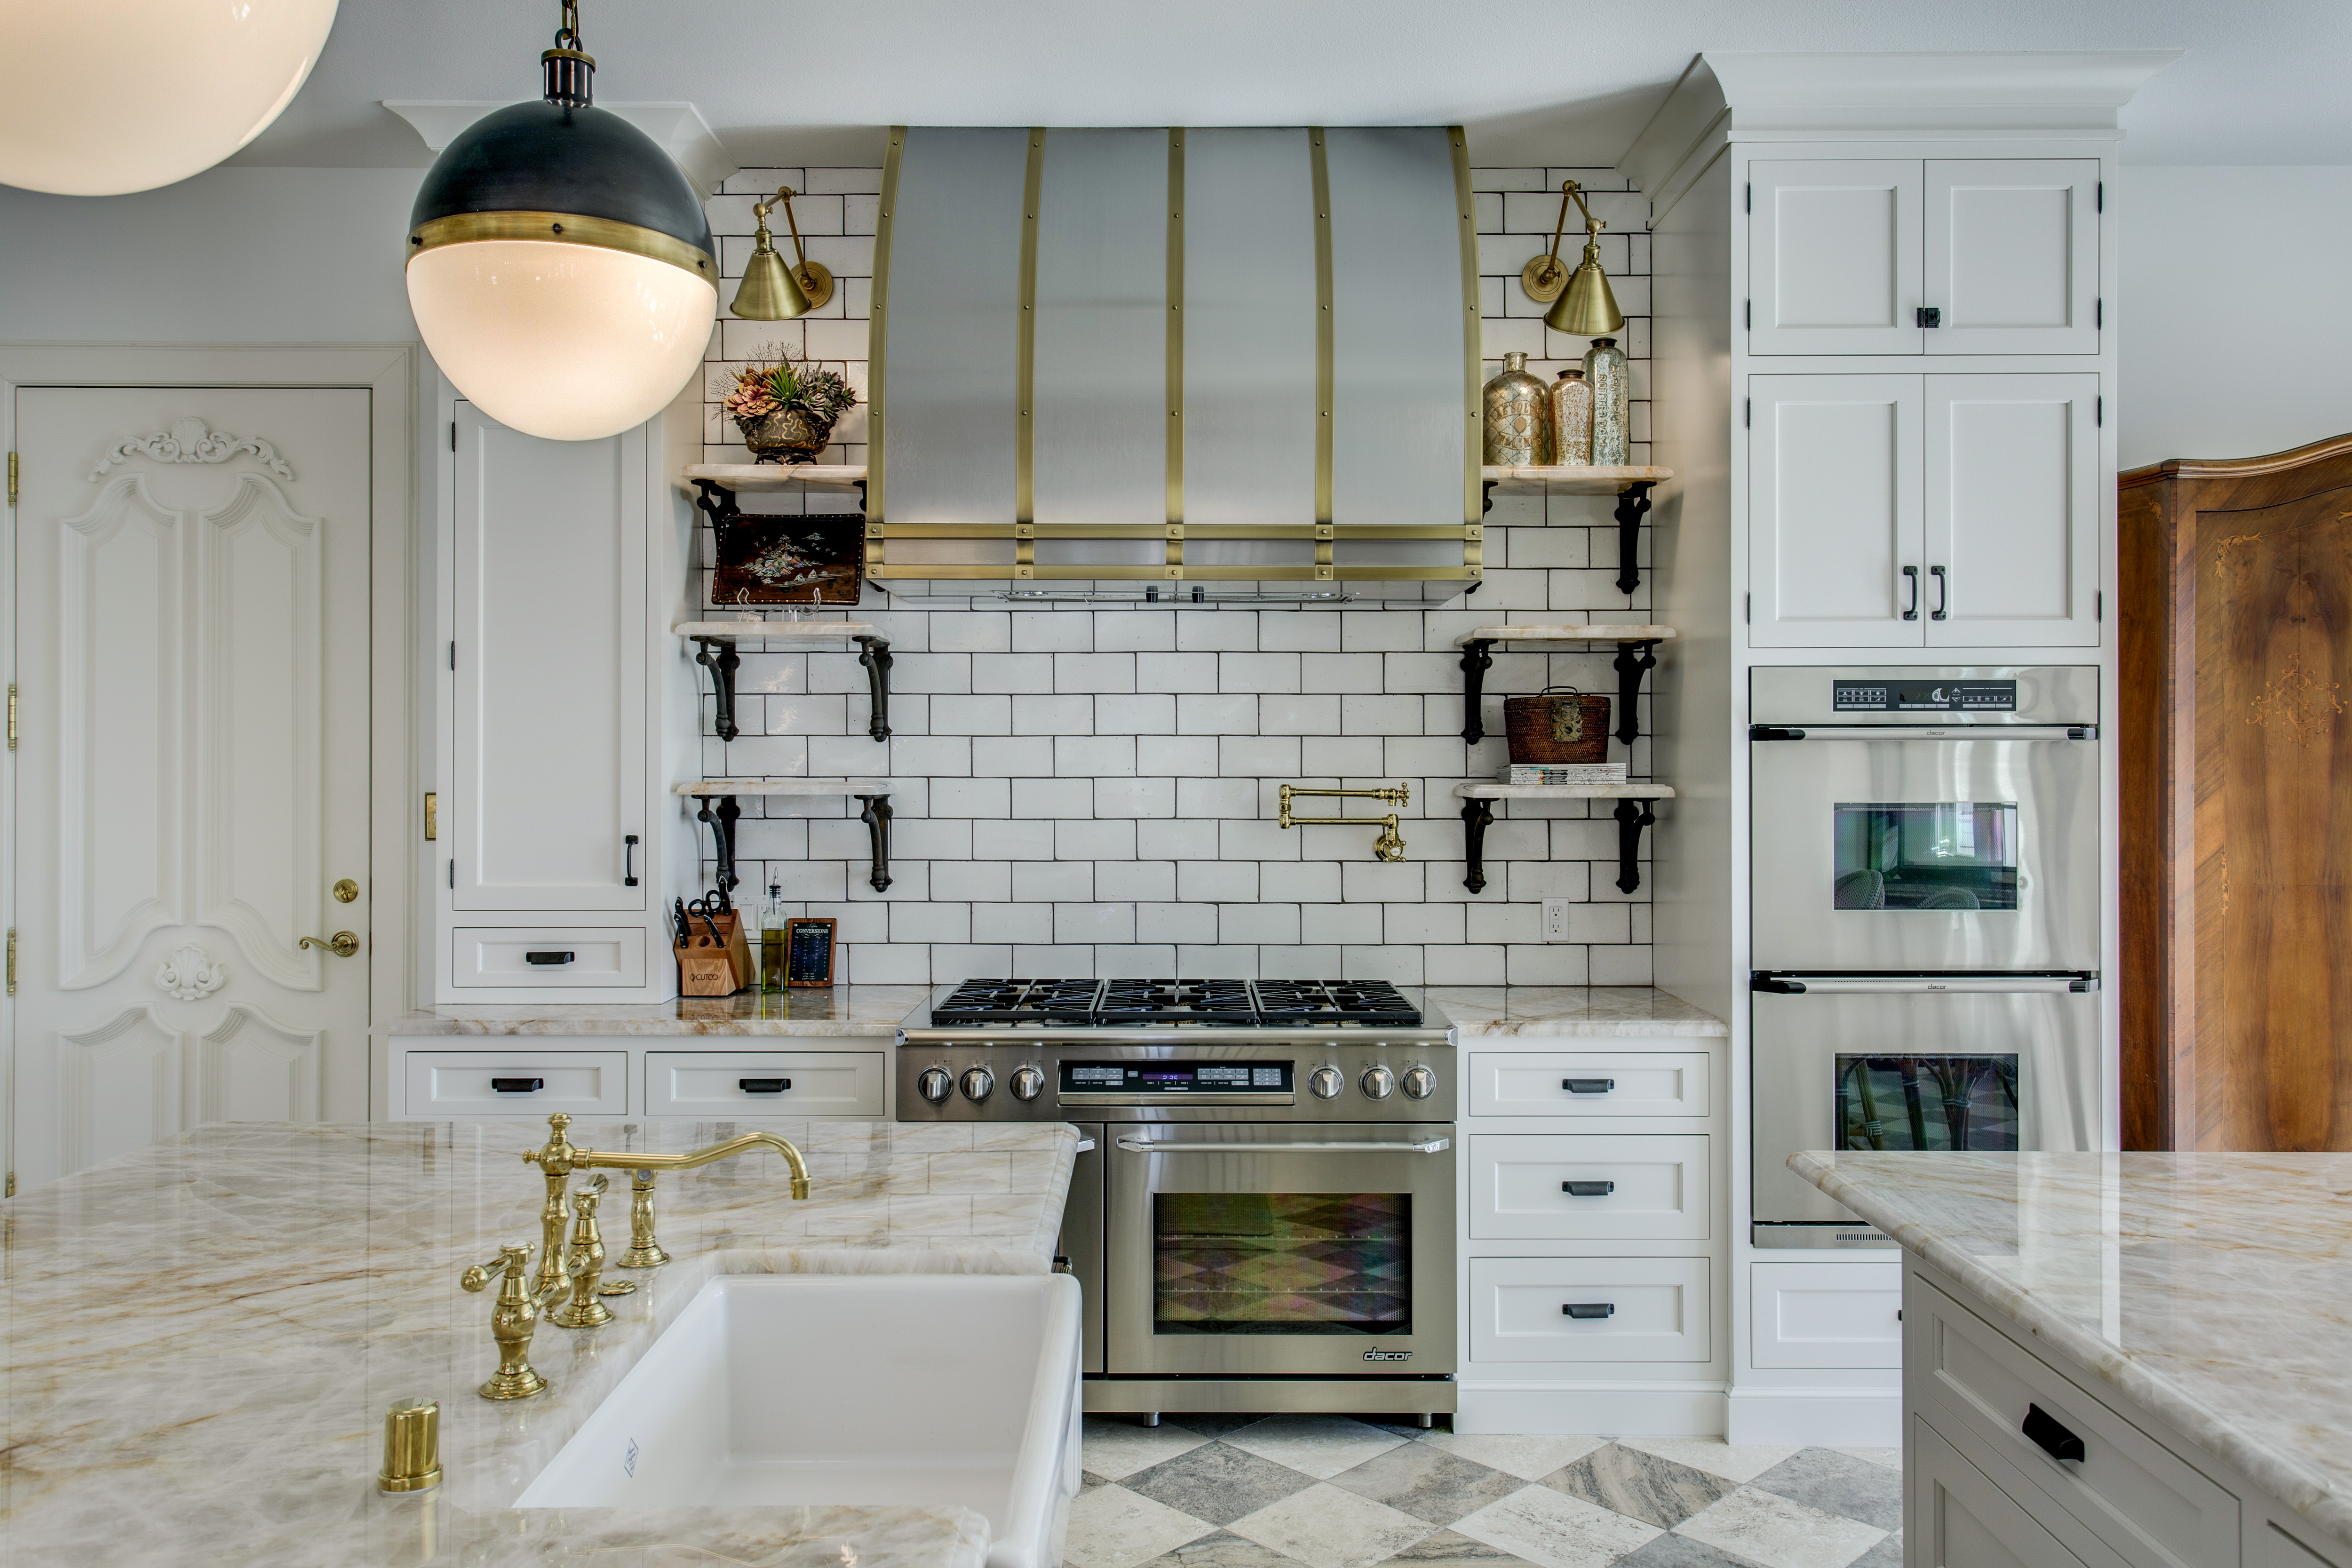 Mixing Metals | Snappy Kitchens